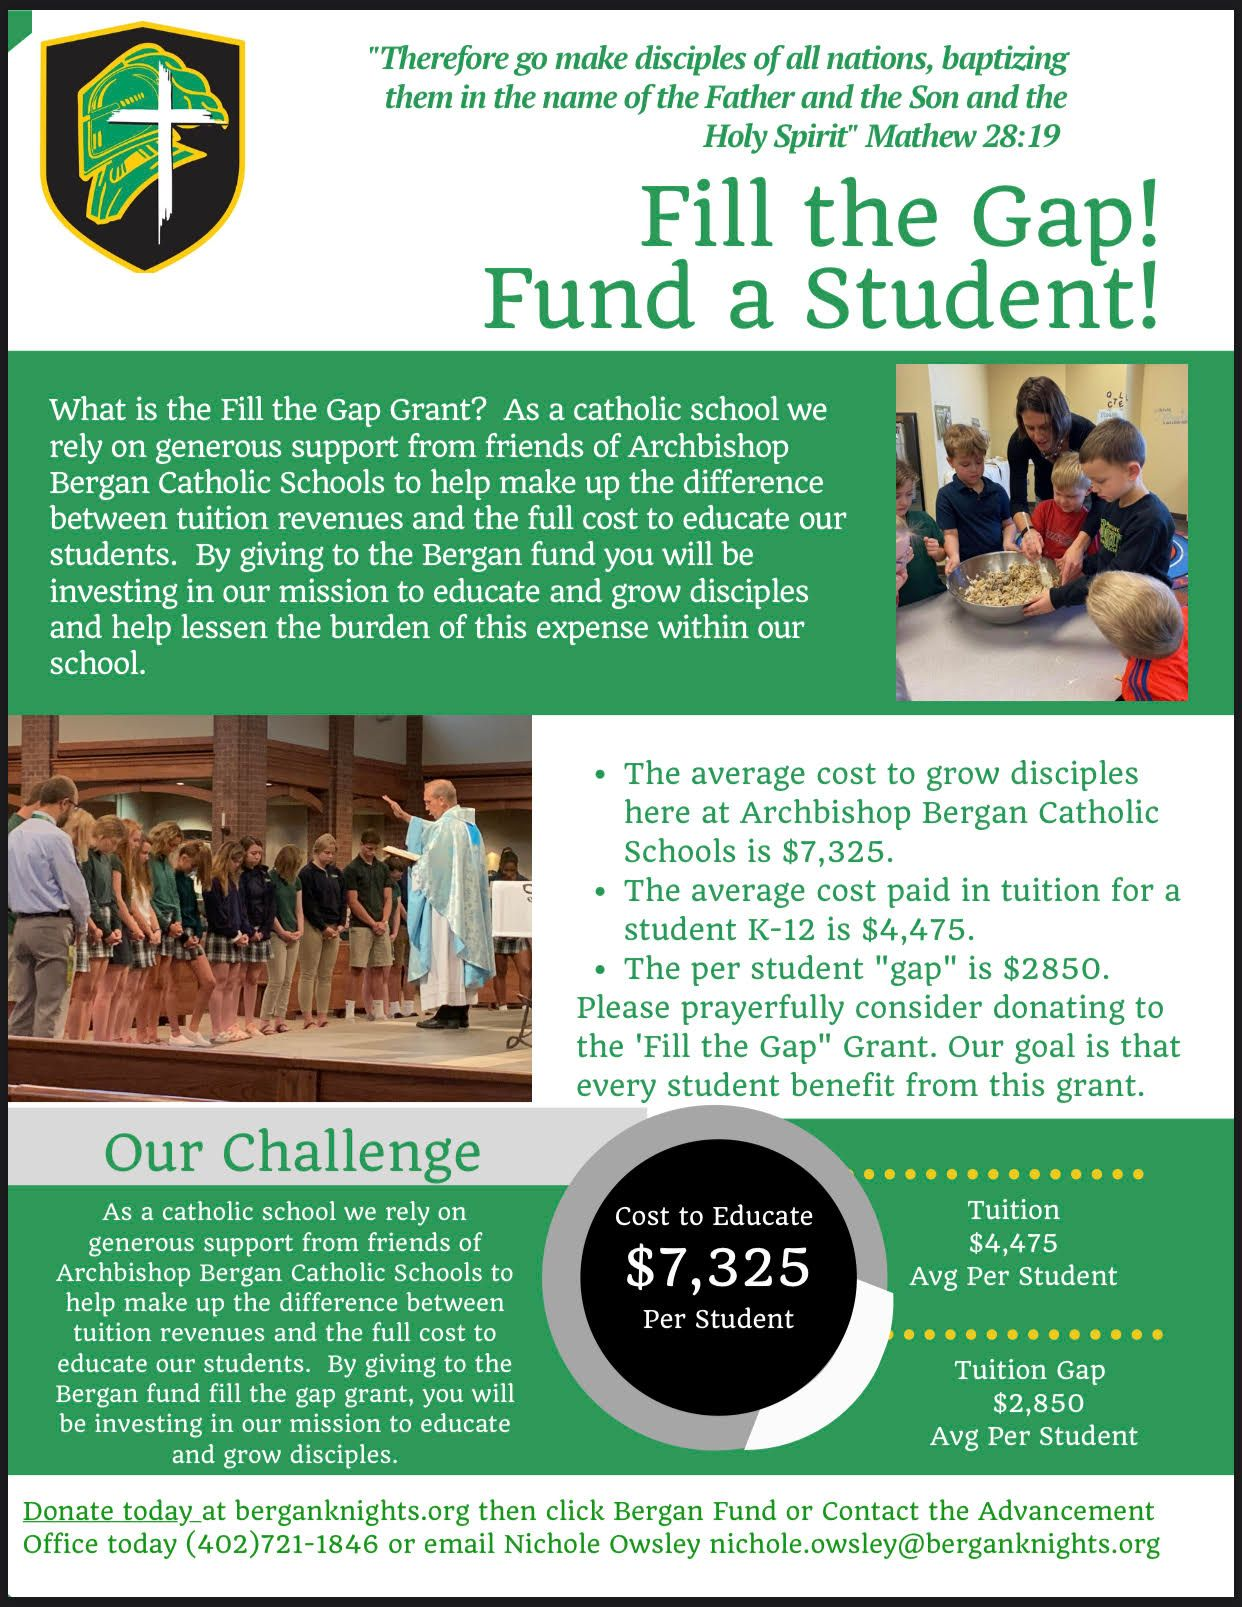 Fill the Gap! Fund a Student!